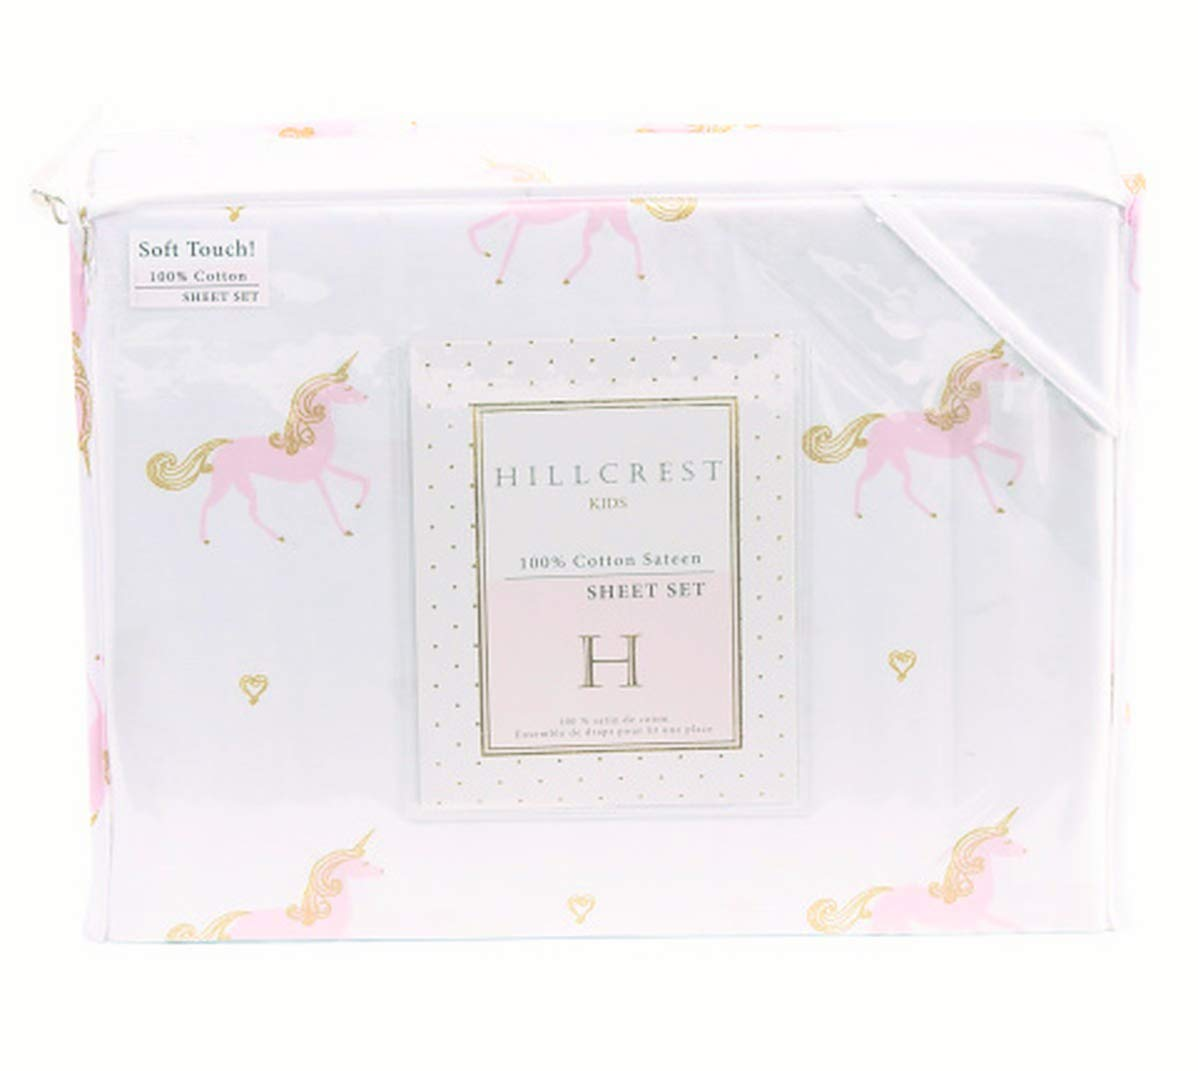 Hillcrest Kids Pastel Pink & Gold Unicorn Sheets for Girls in Cotton Sateen (Twin) by Hillcrest Kids